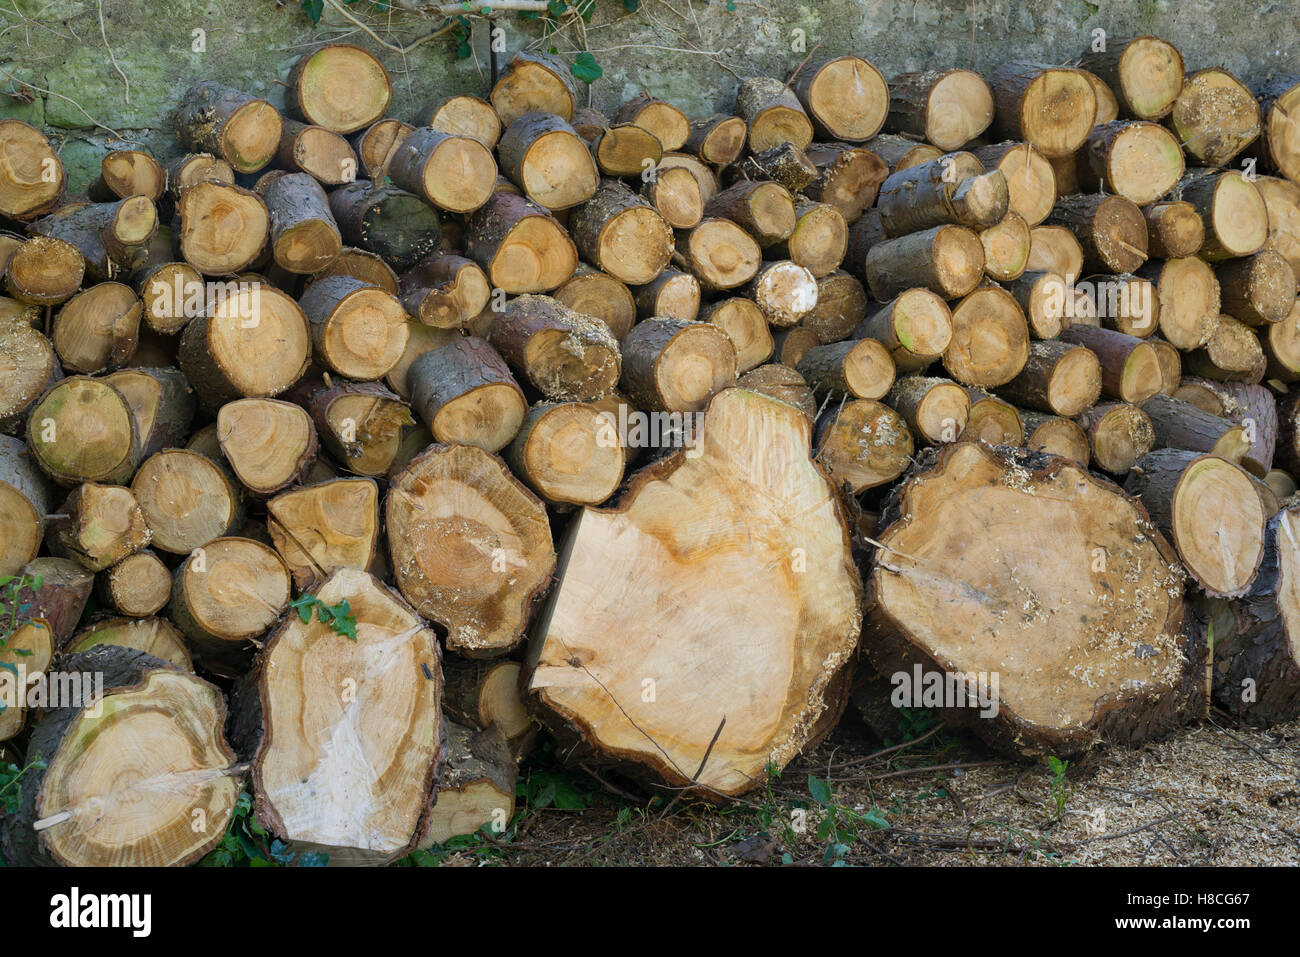 Logges softwood in a garden - Stock Image